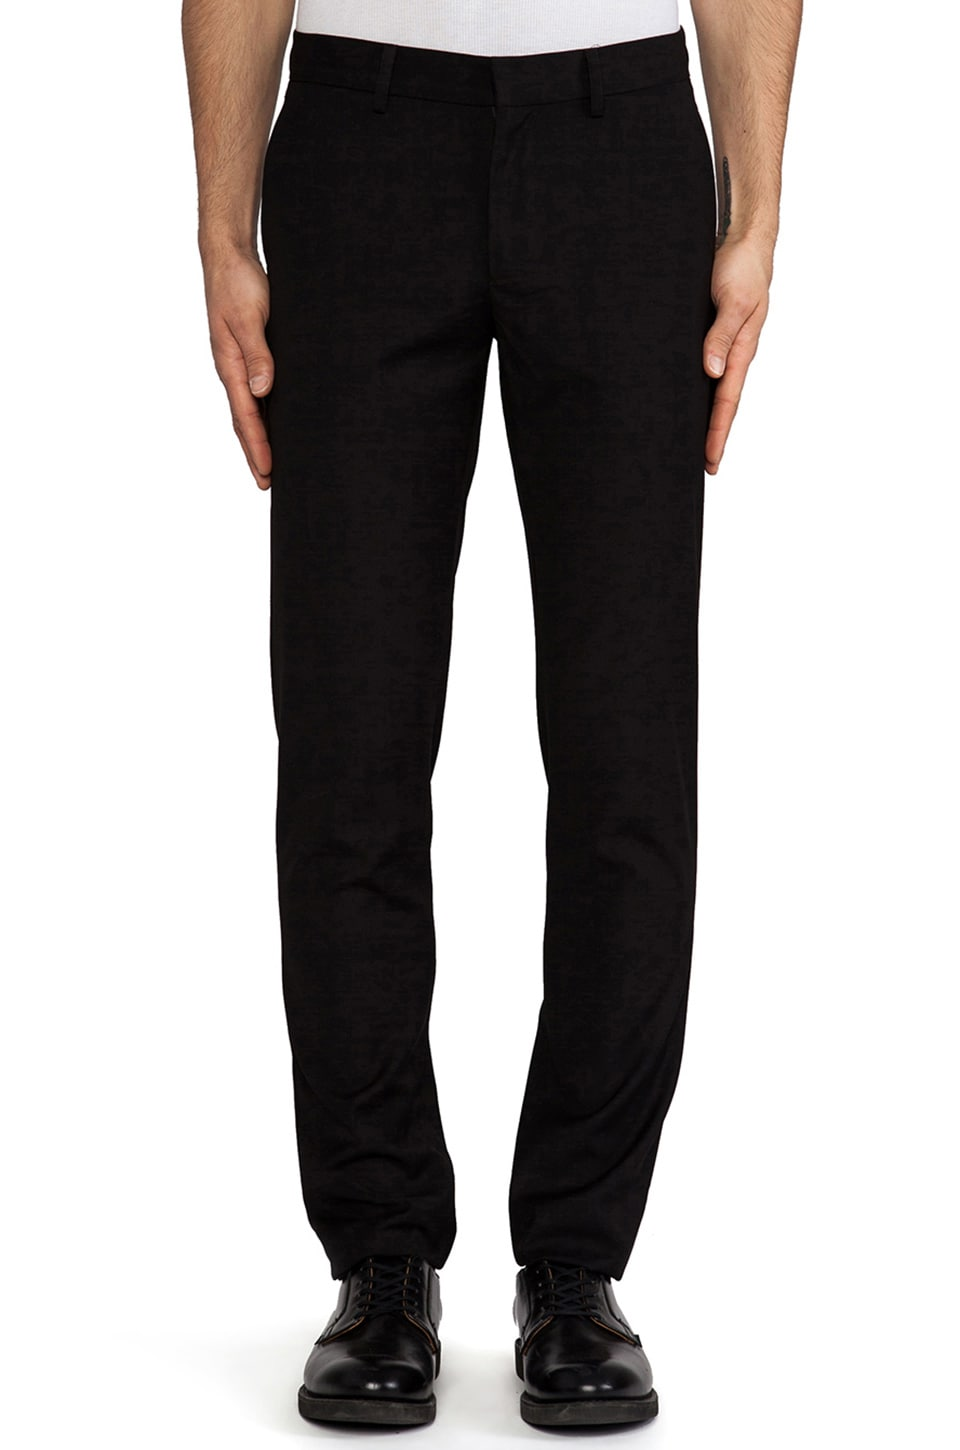 Shades of Grey by Micah Cohen Slim Fit Suit Pant in Black Wool